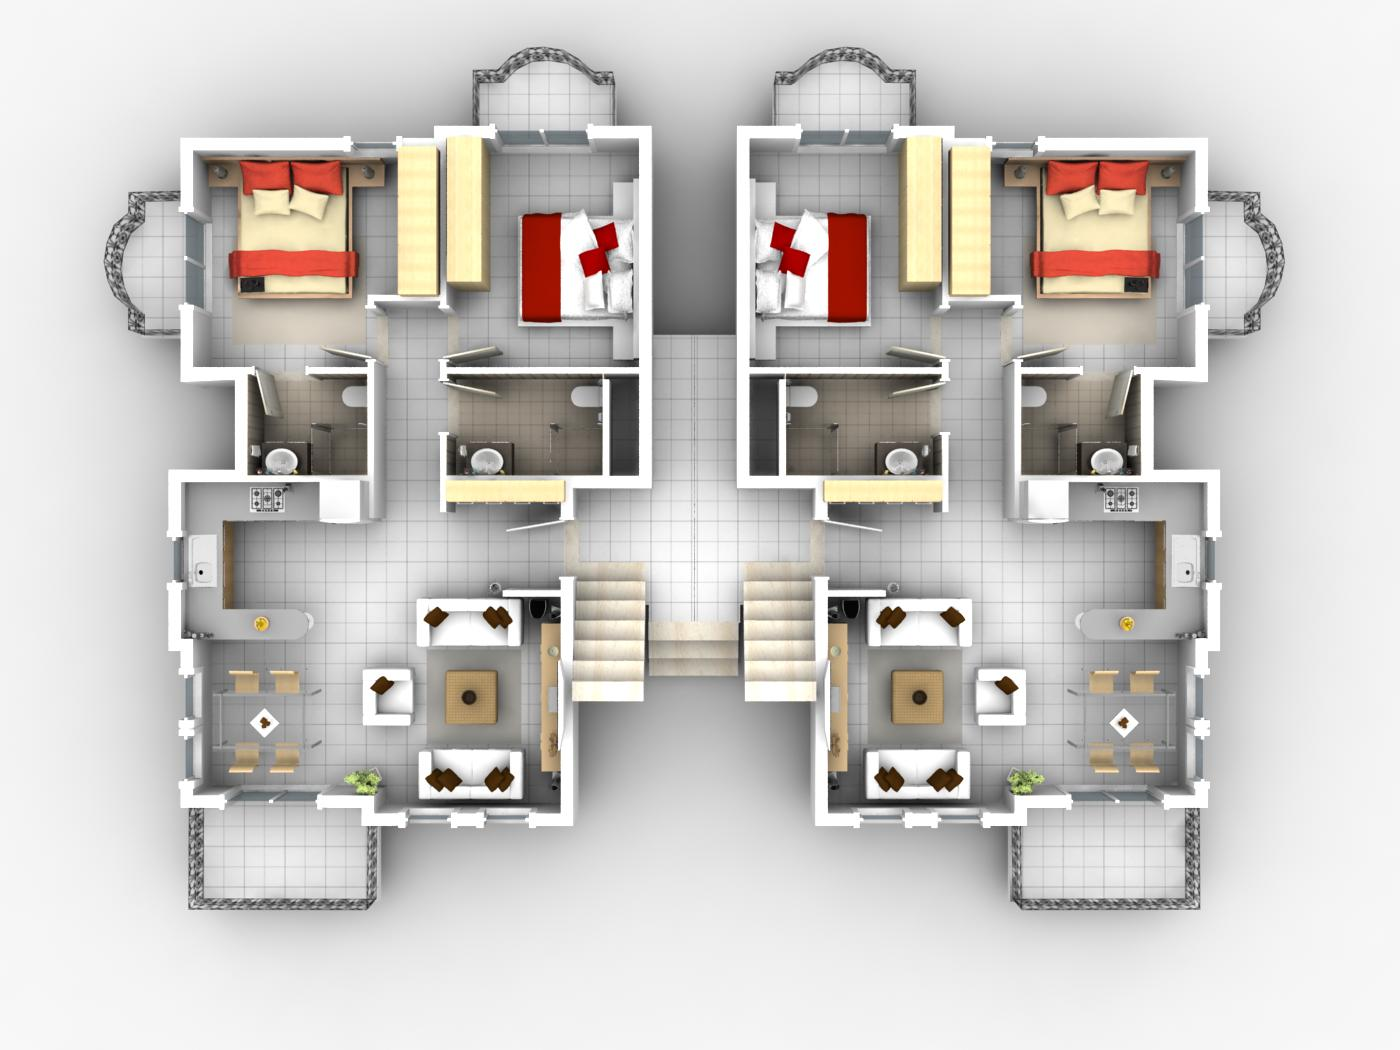 Best apartment floor plans 2 bedroom pictures 01 small for Best apartment floor plans